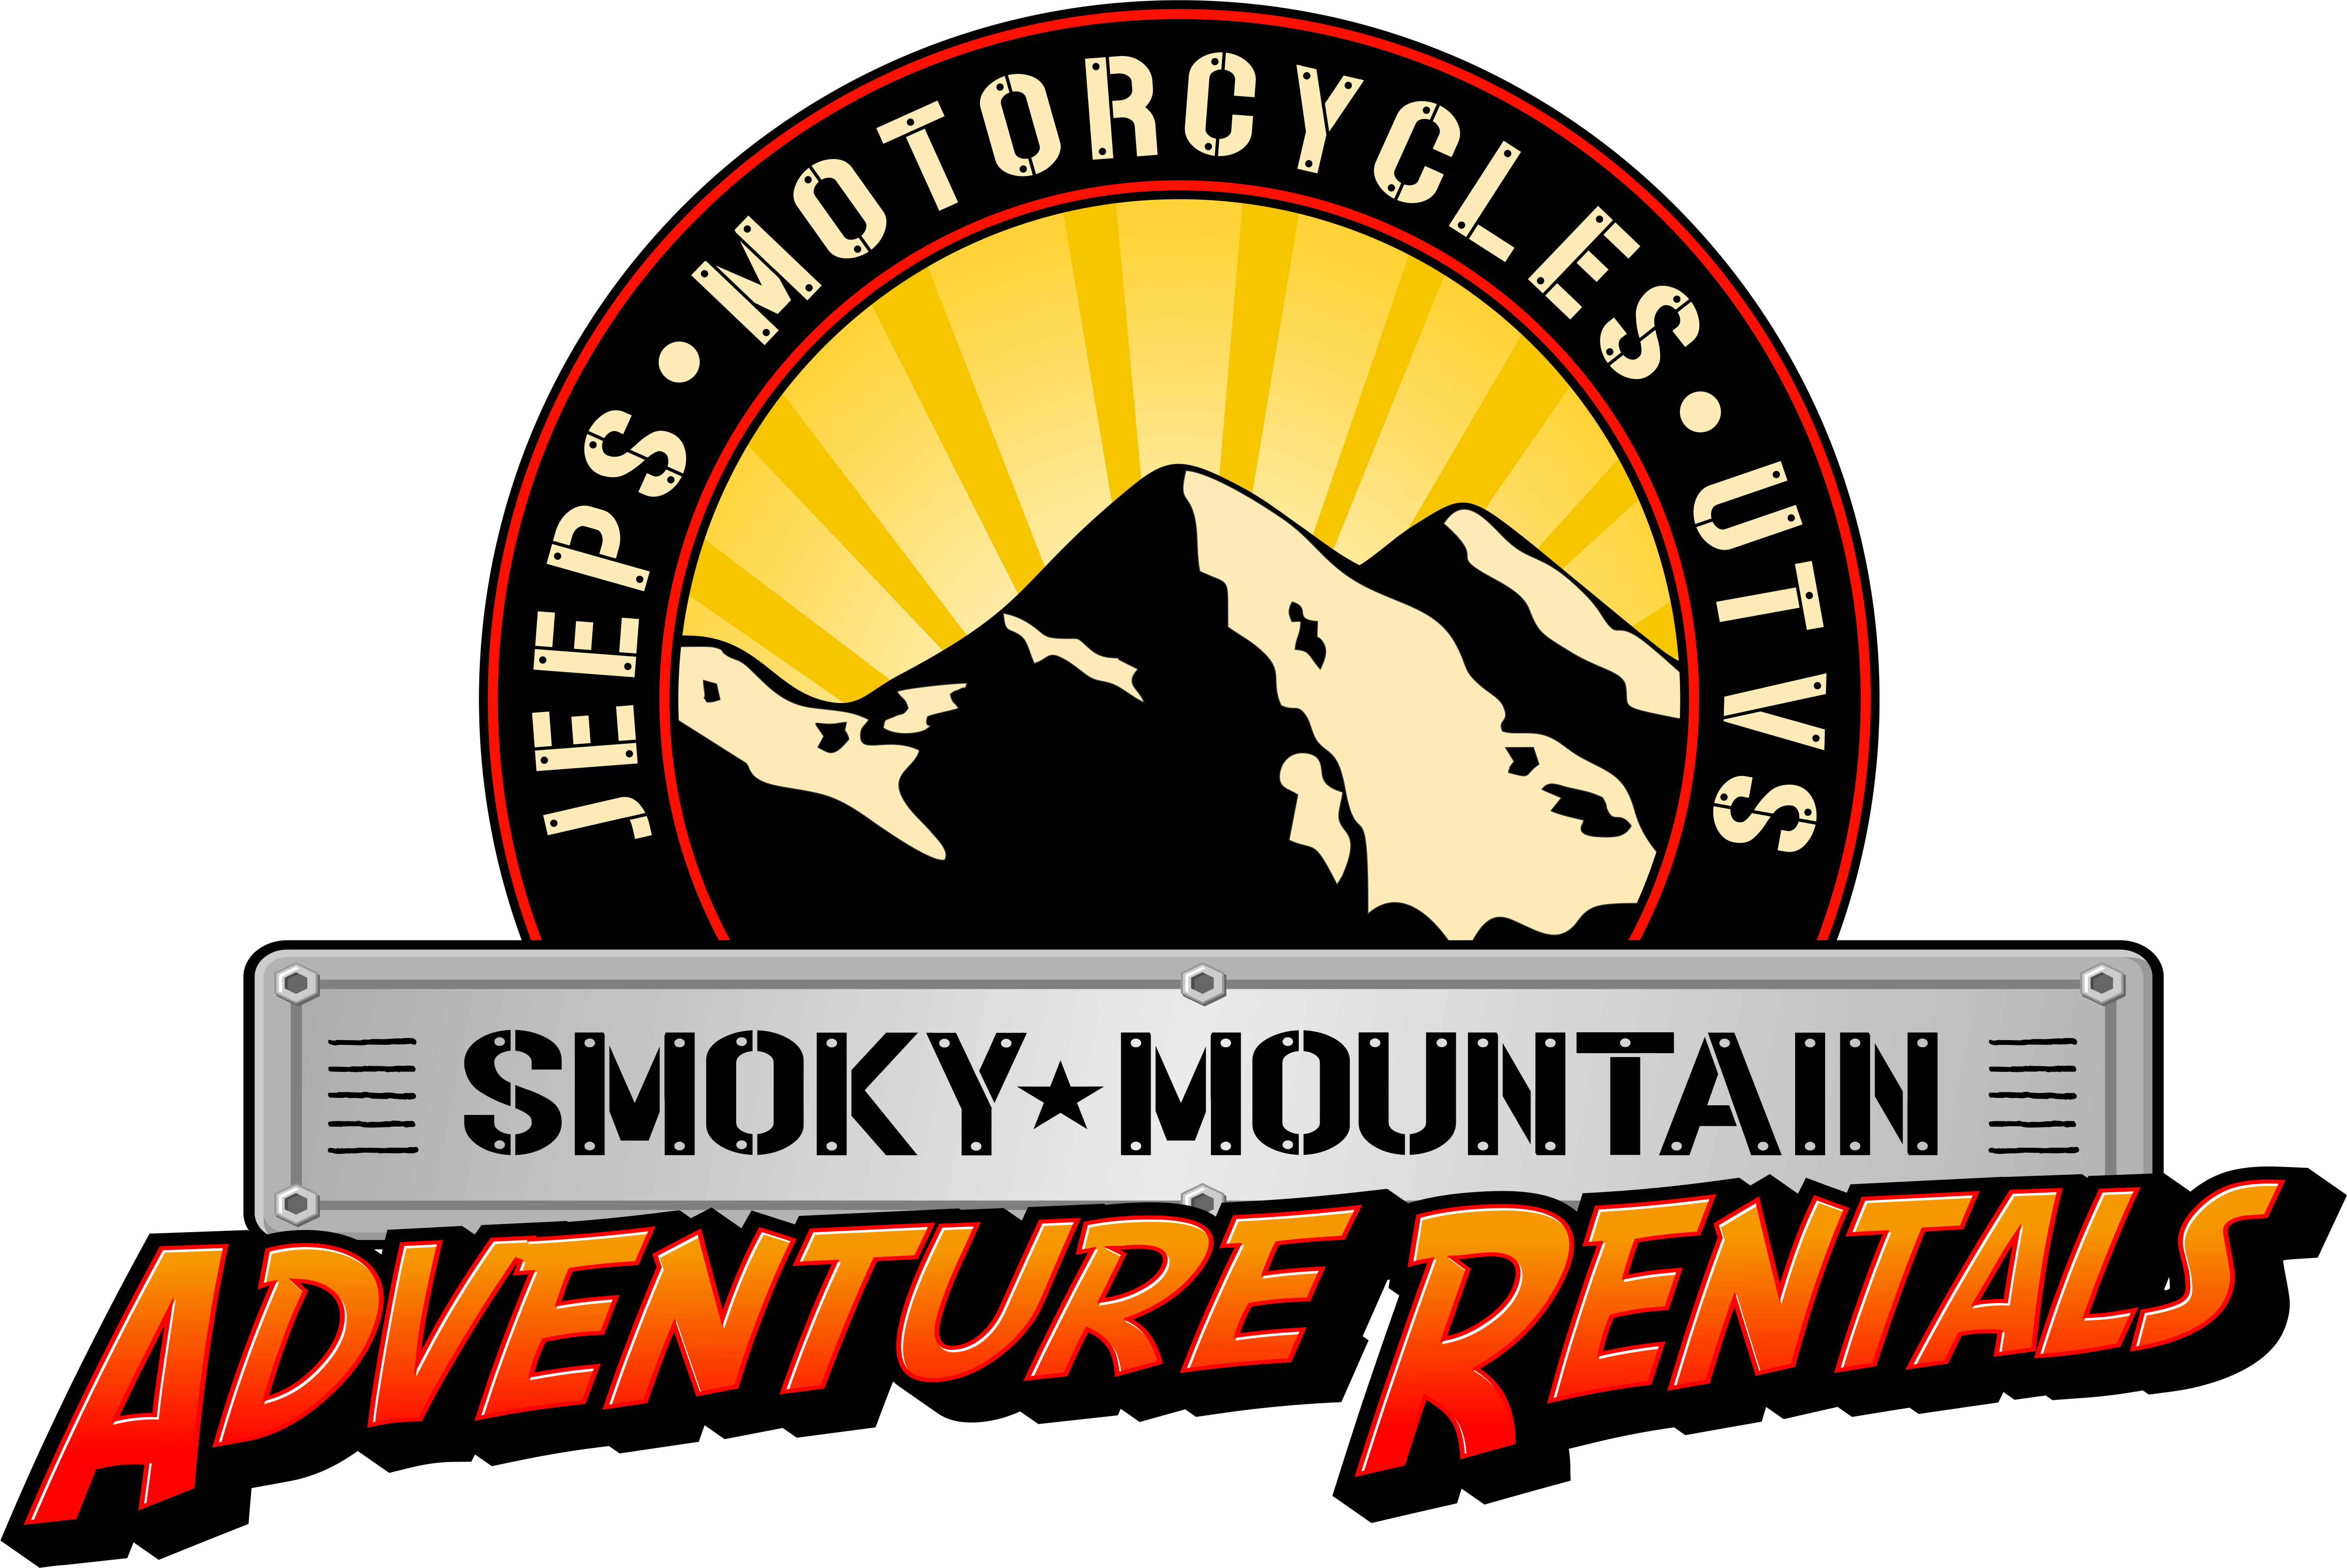 SMOKY MOUNTAIN ADVENTURE RENTALS LOGO 2.